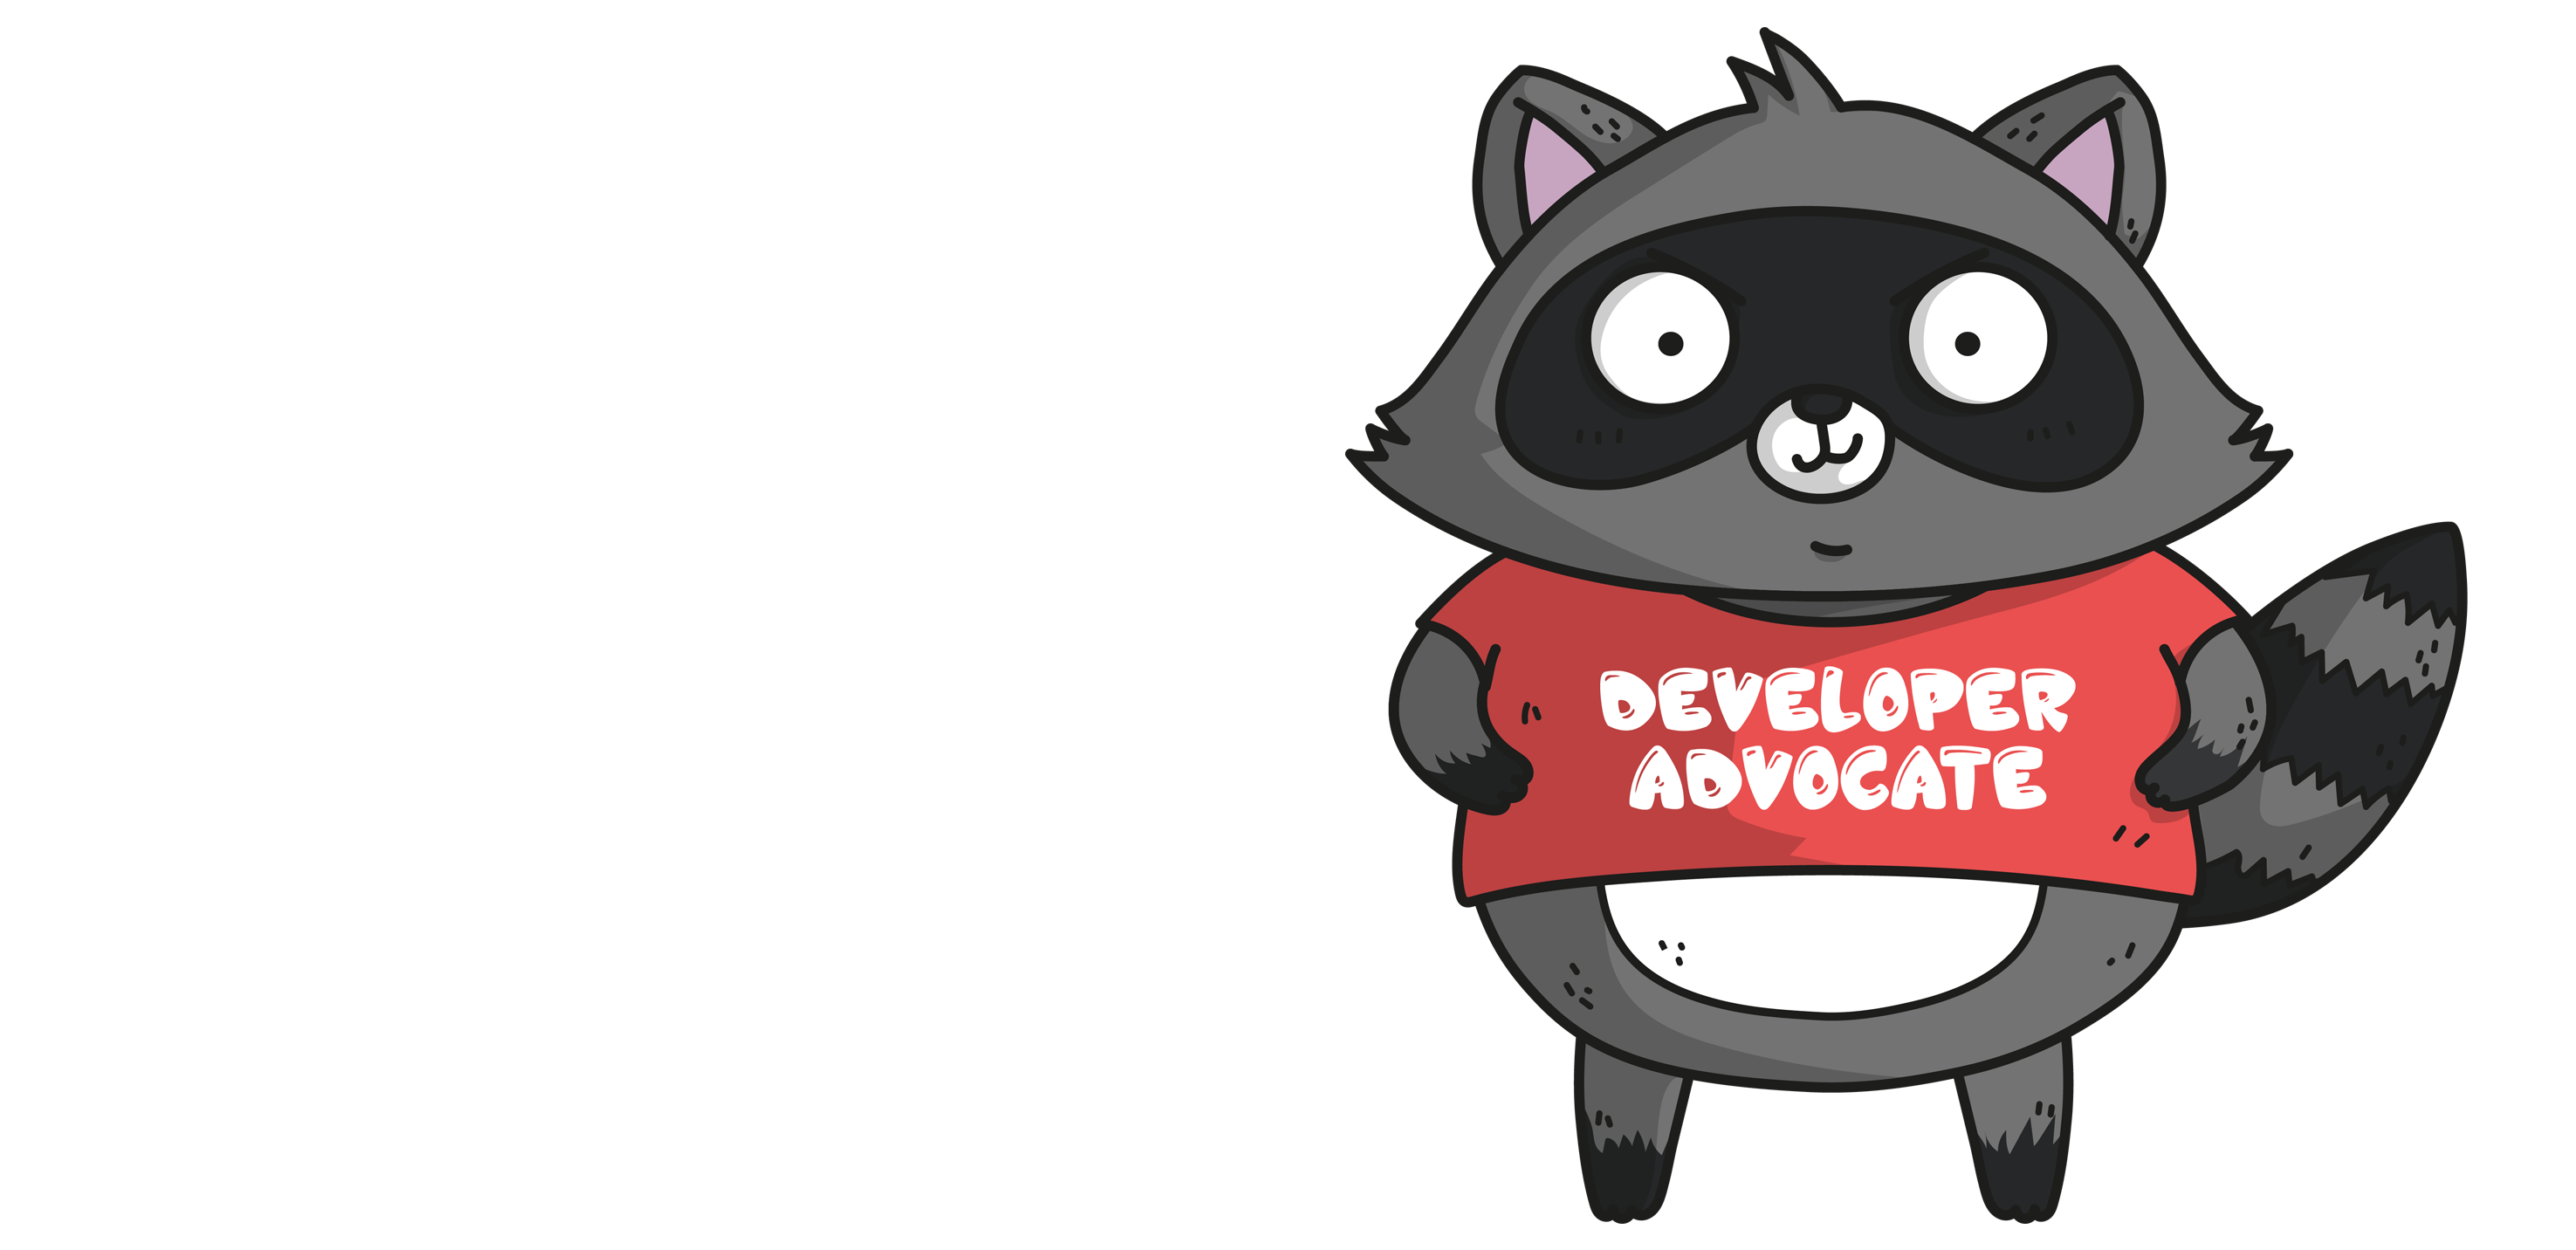 Developer Advocate Bit in a Red T-Shirt with Developer Advocate label.